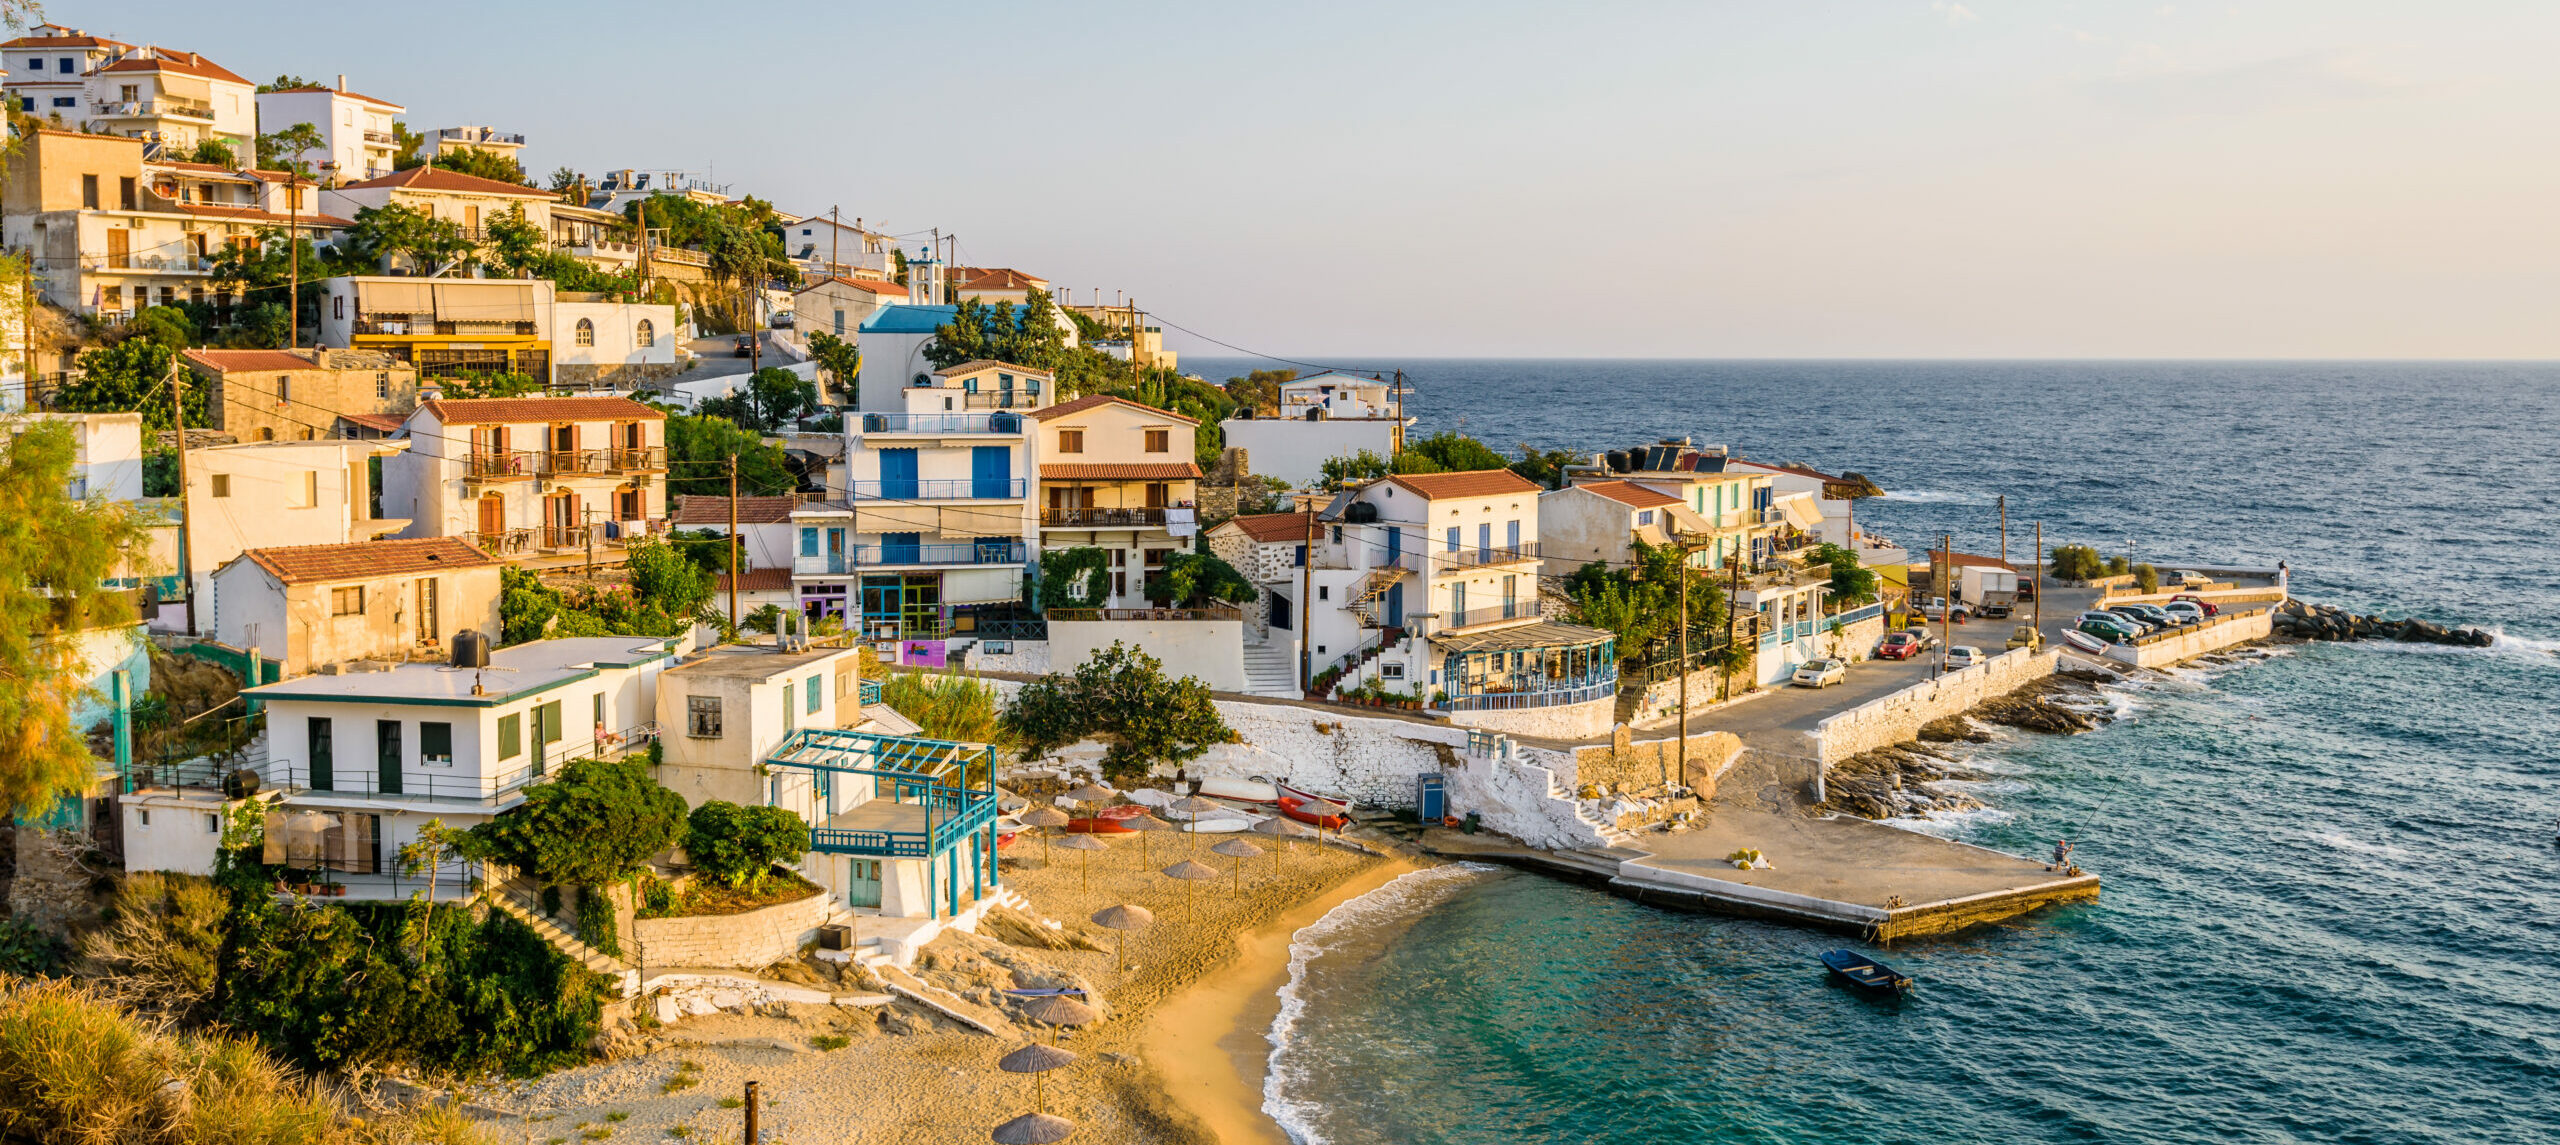 Ikaria: The way of life and the secret of longevity